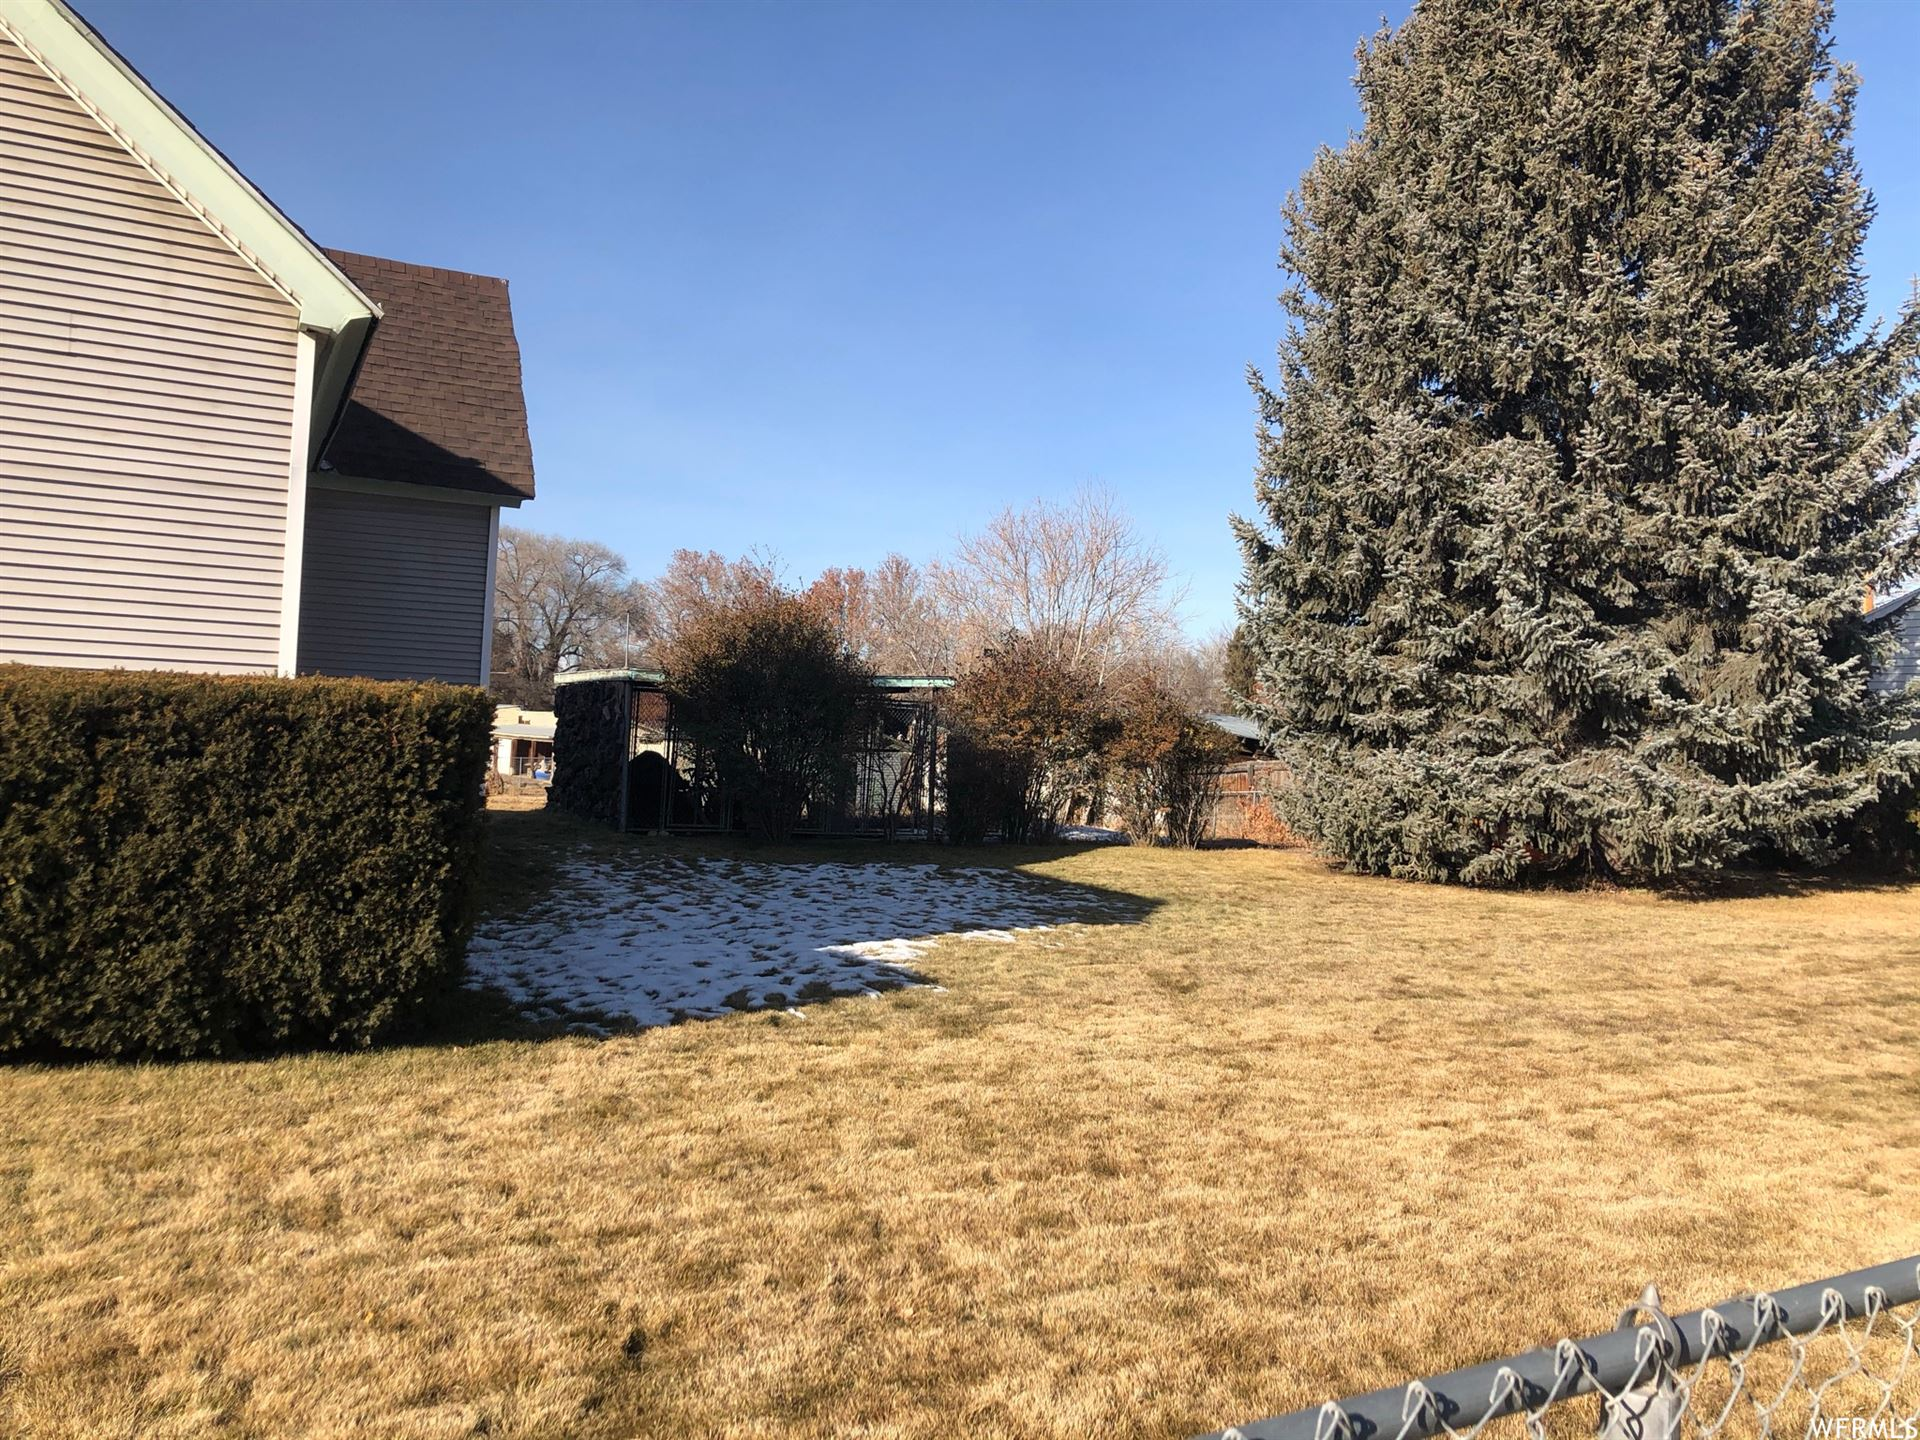 Photo of 341 N 300 E, American Fork, UT 84003 (MLS # 1724483)